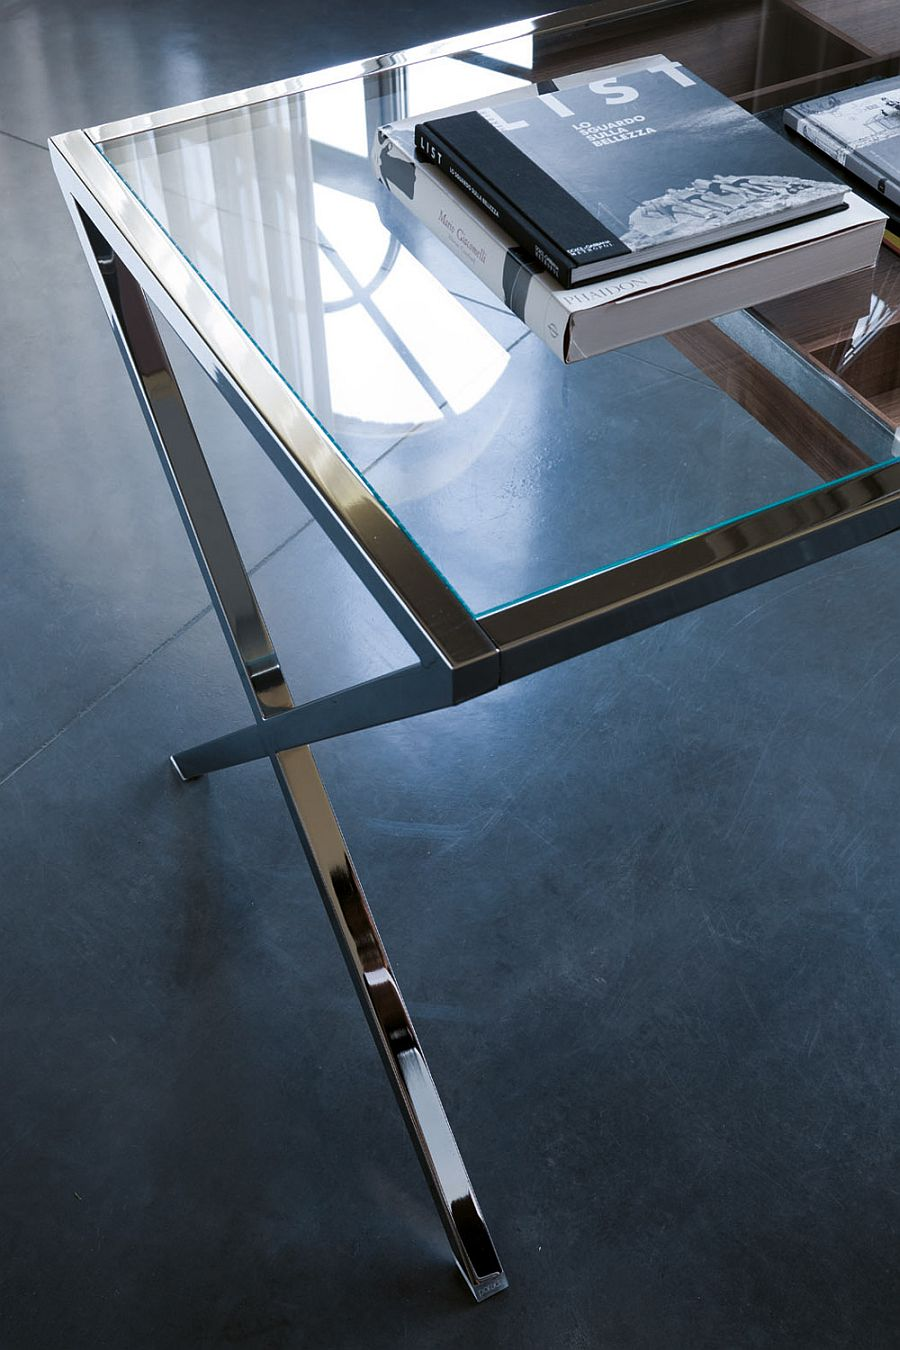 Closer look at the fabulous Stylo desk